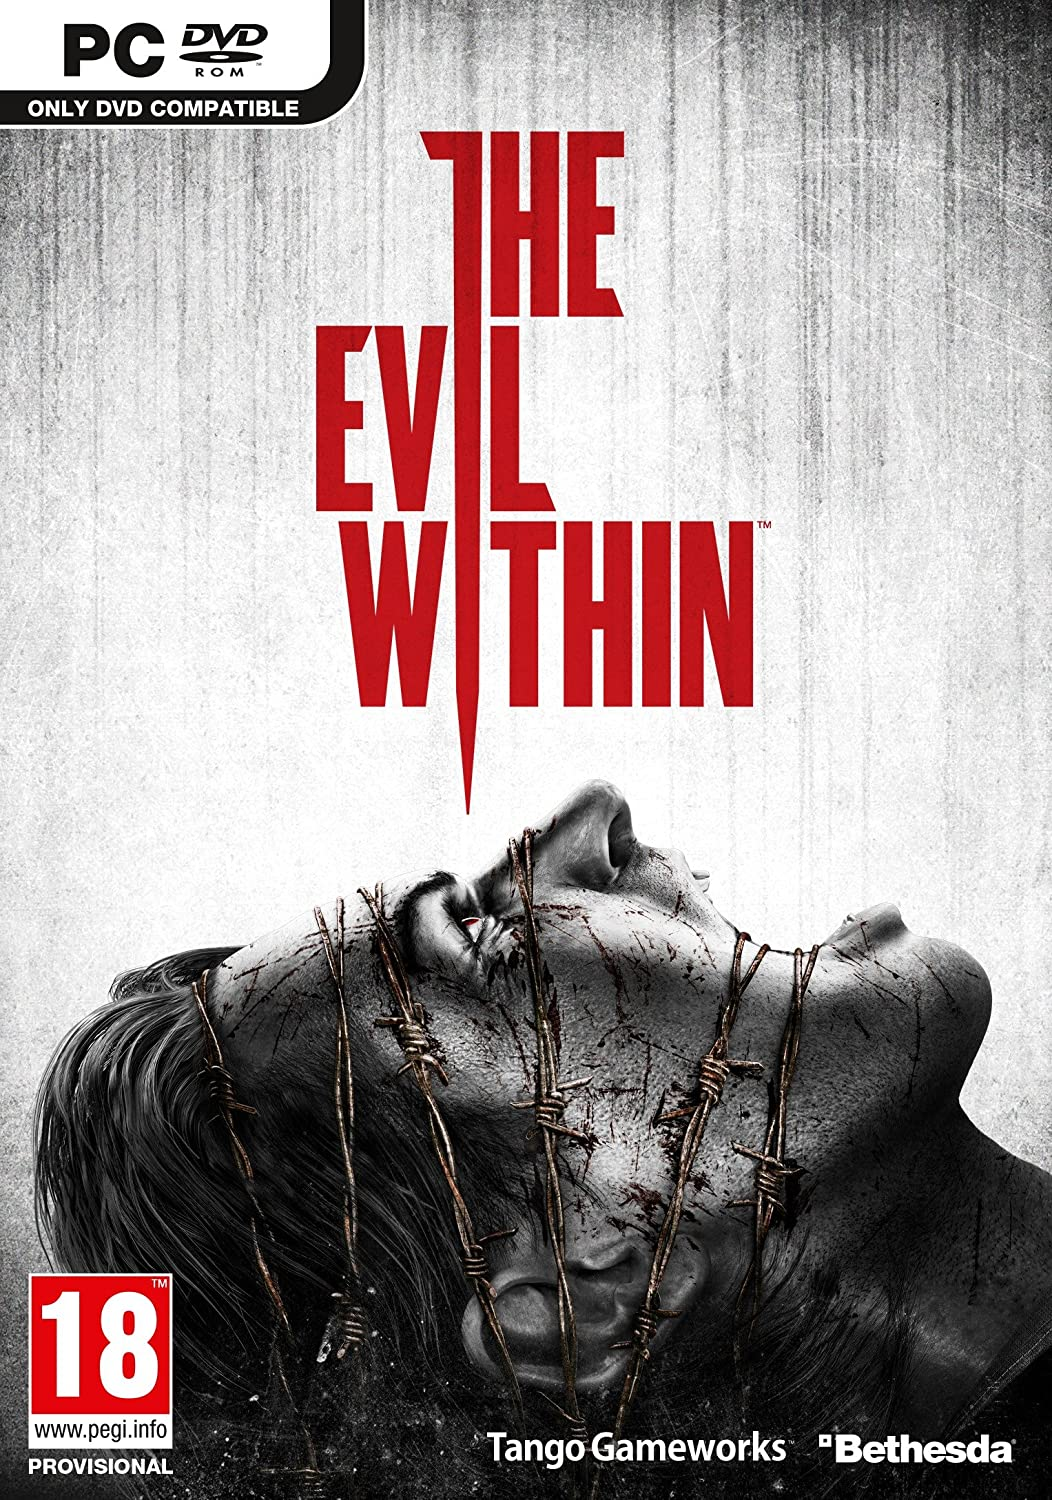 Image result for The Evil Within cover pc